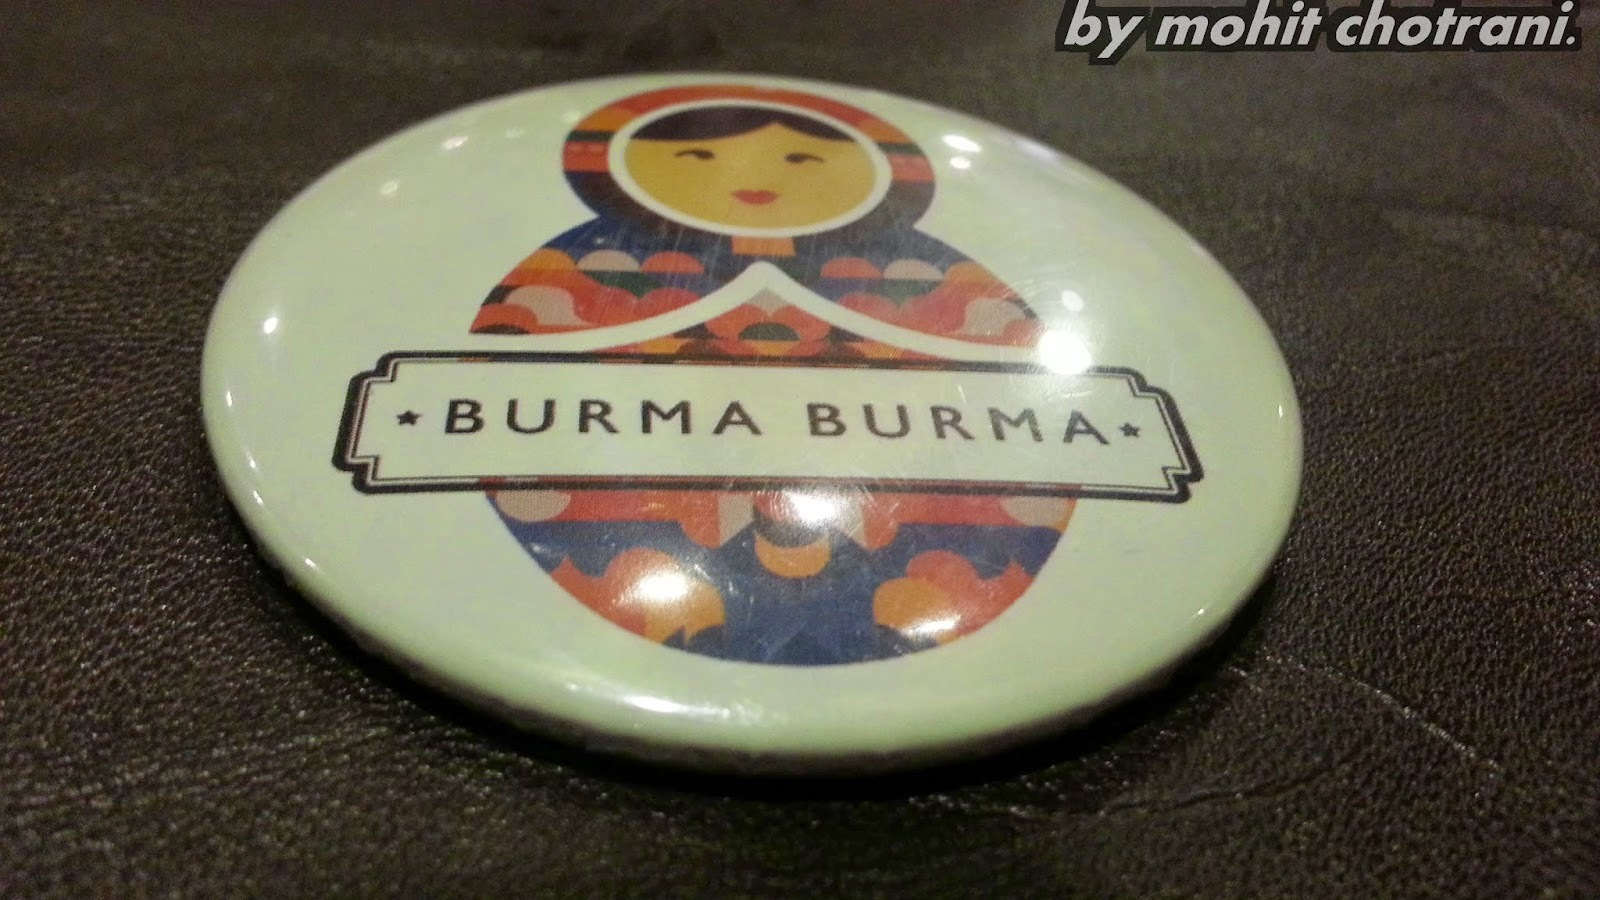 Burmese Food With Burma Burma